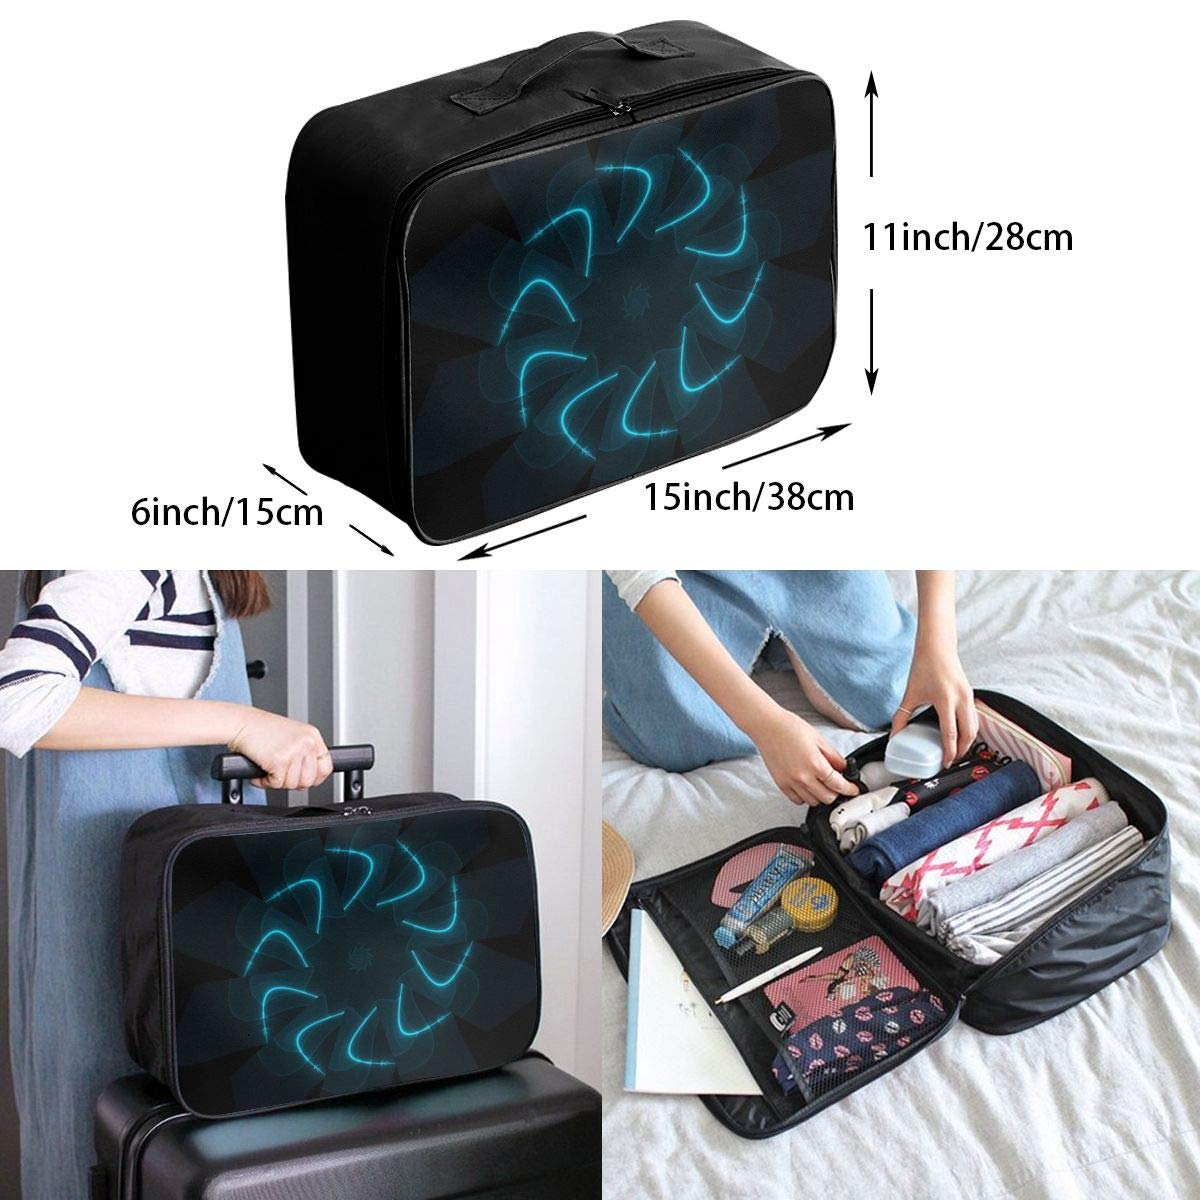 Artistic Color Perfect Travel Lightweight Waterproof Foldable Storage Carry Luggage Large Capacity Portable Luggage Bag Duffel Bag